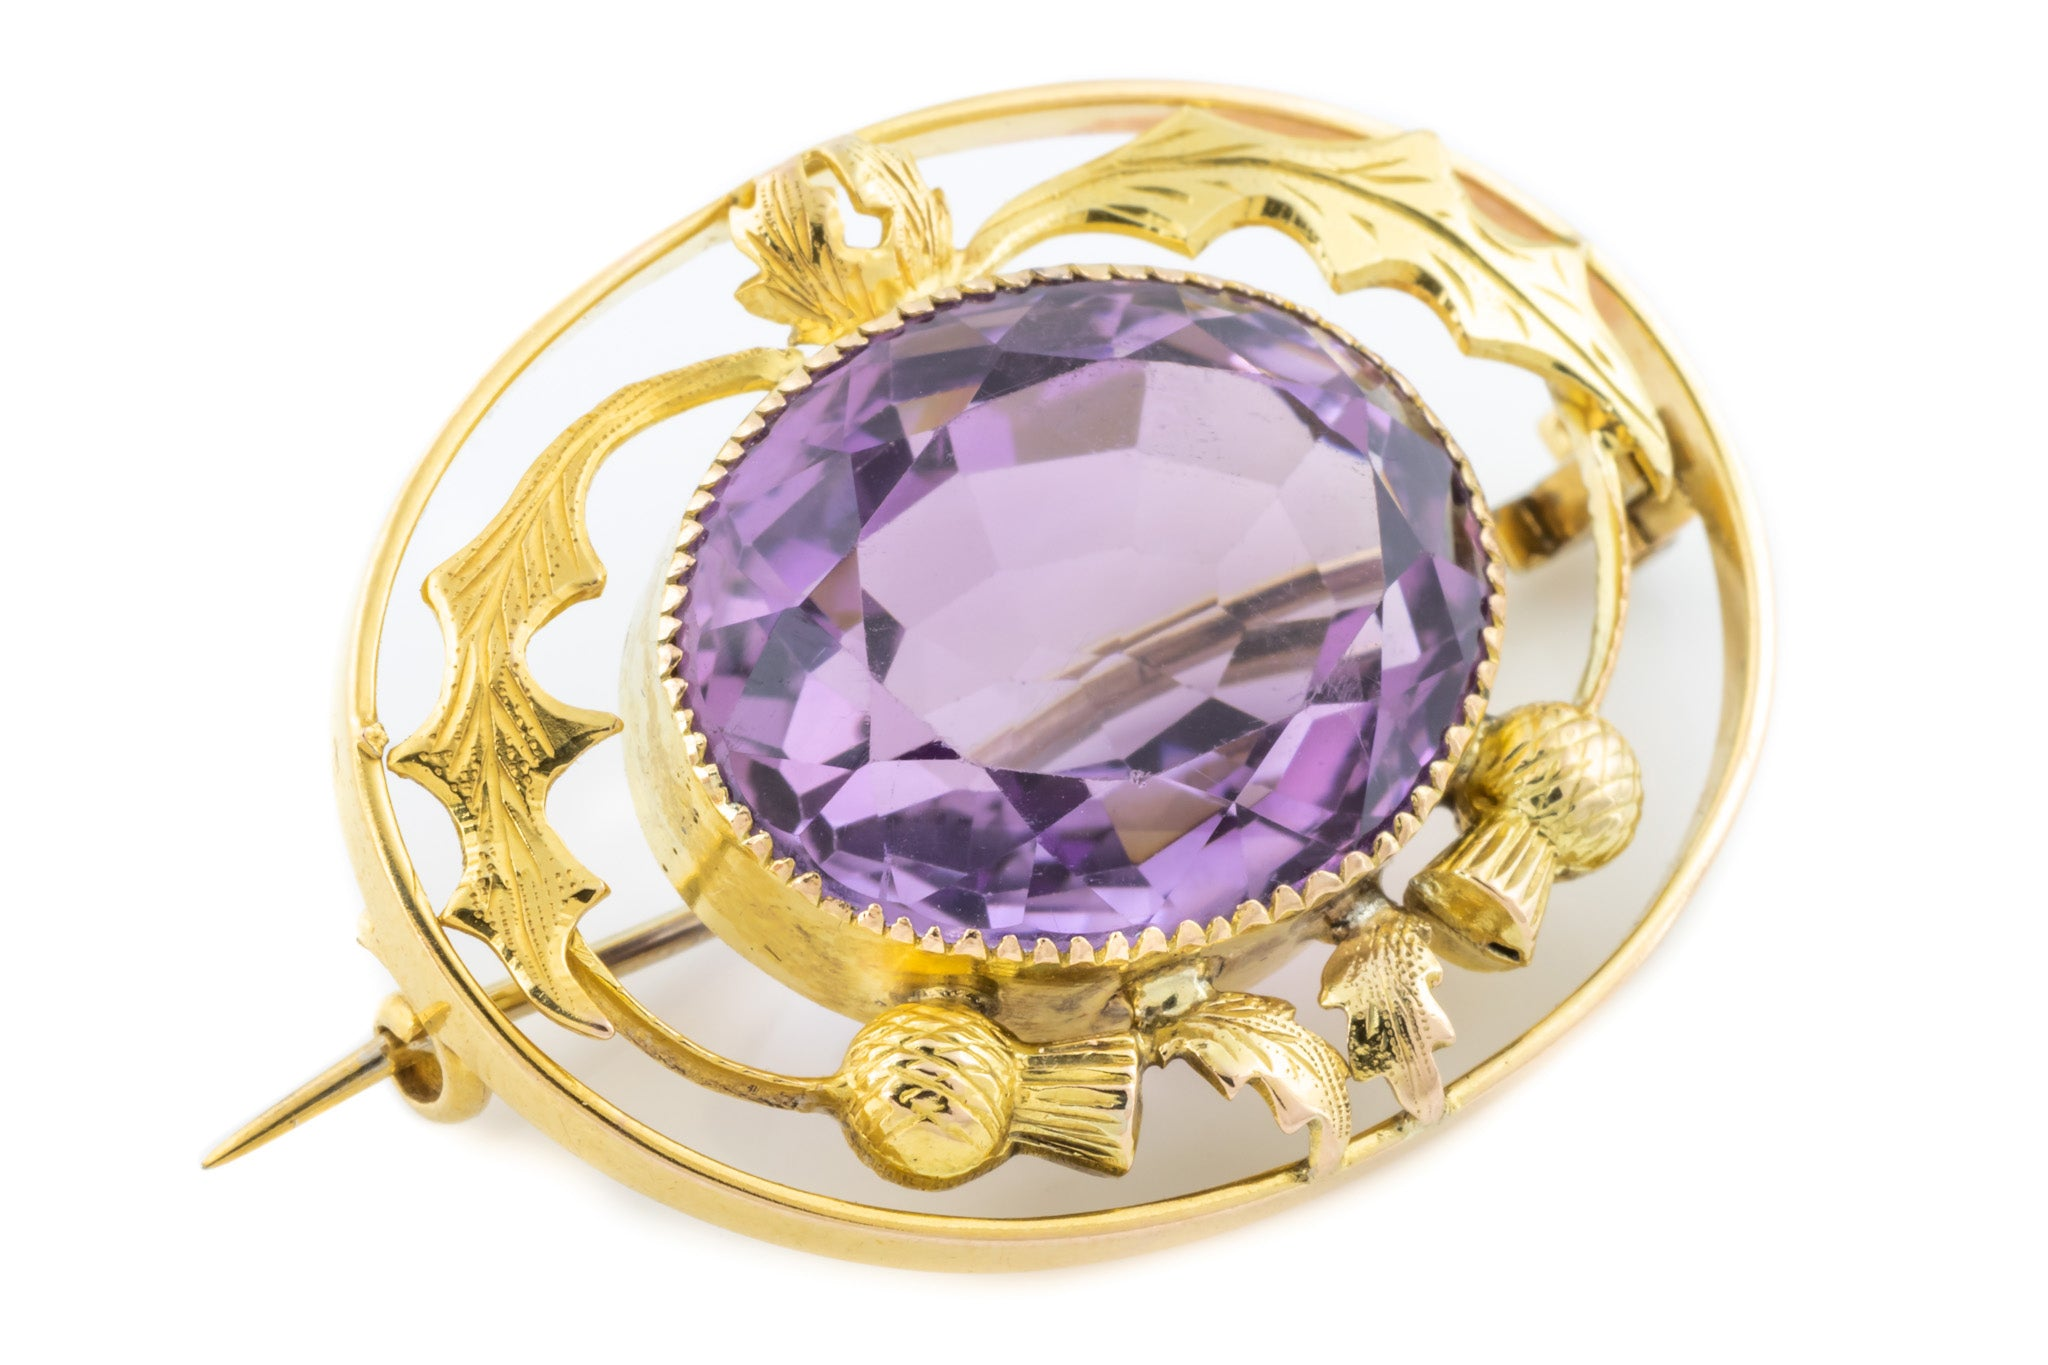 7d72bcc337190 Antique Amethyst Brooch with 9ct Gold Scottish Thistle Motif (13.47 ...